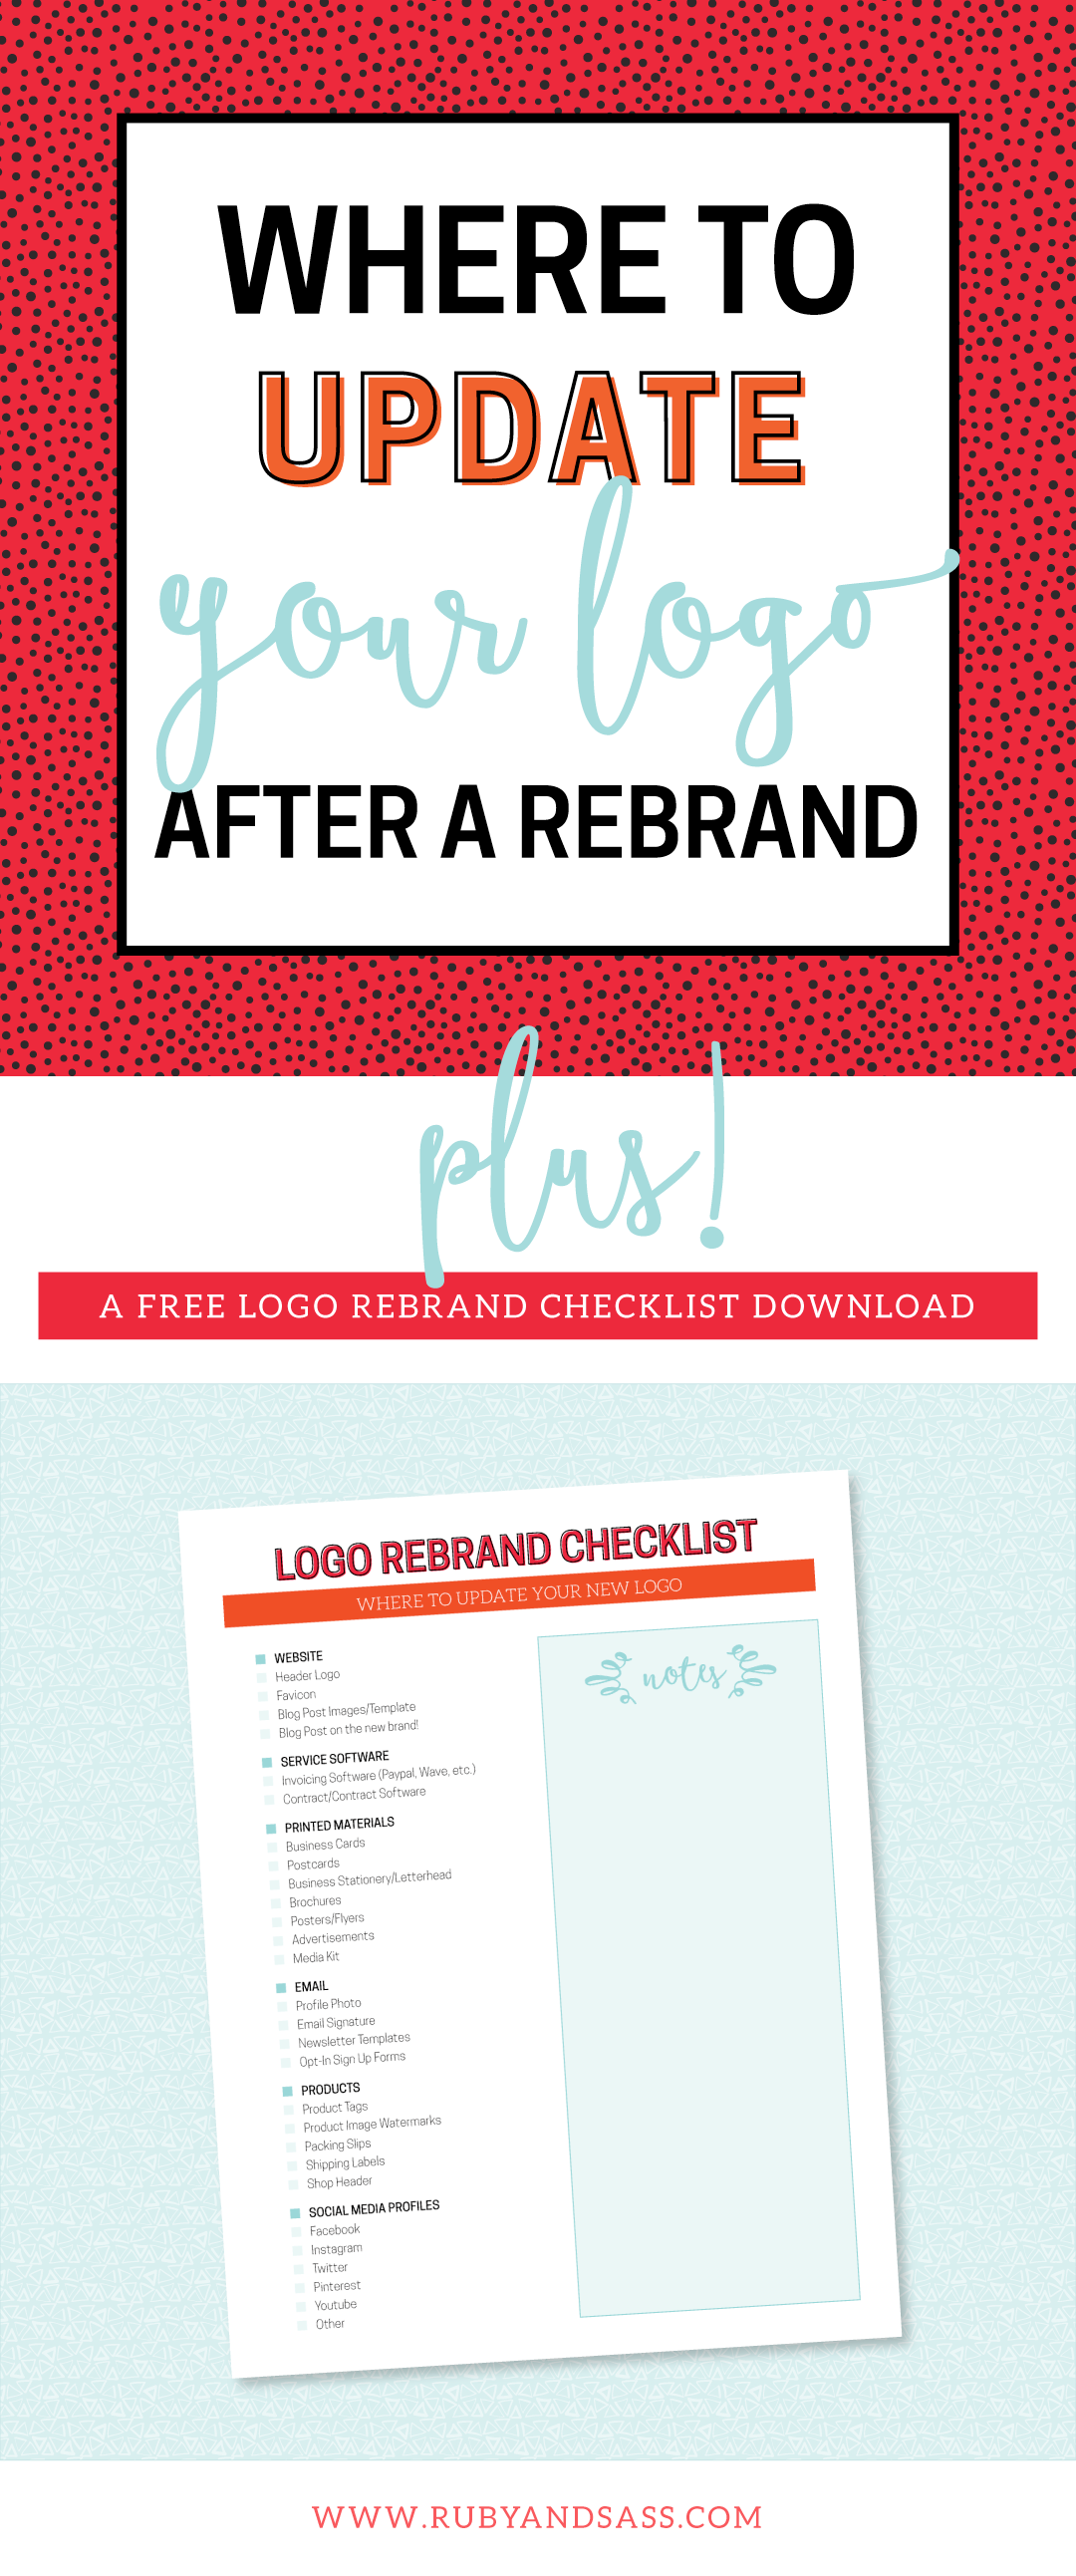 Where to Update Your Logo After a Rebrand